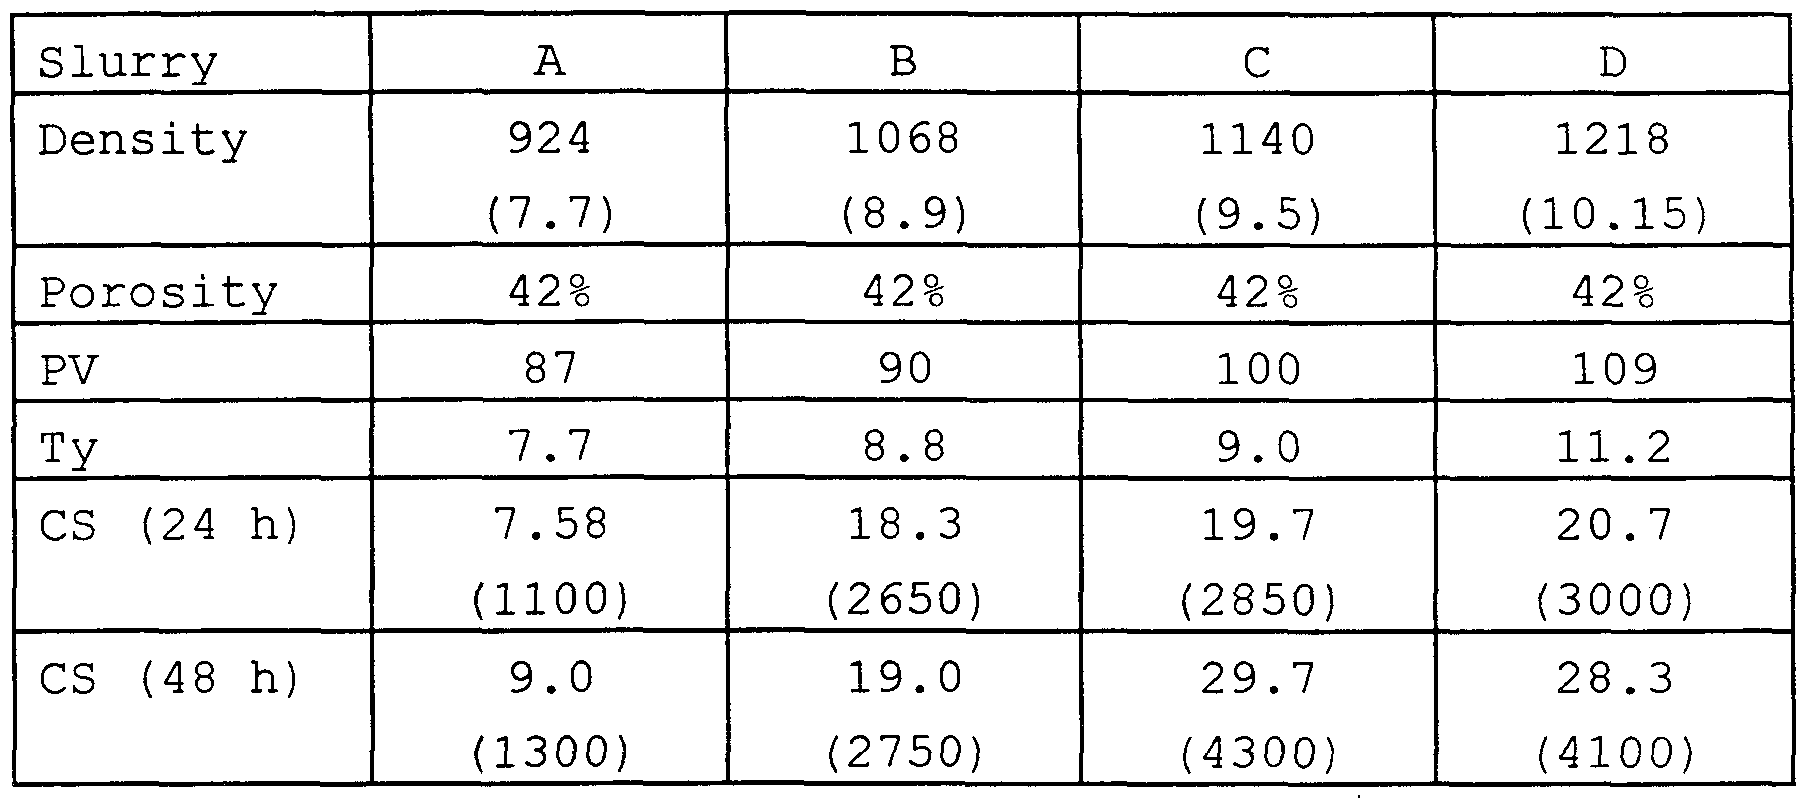 Slag Cement Density : Brevetto wo a low density and porosity